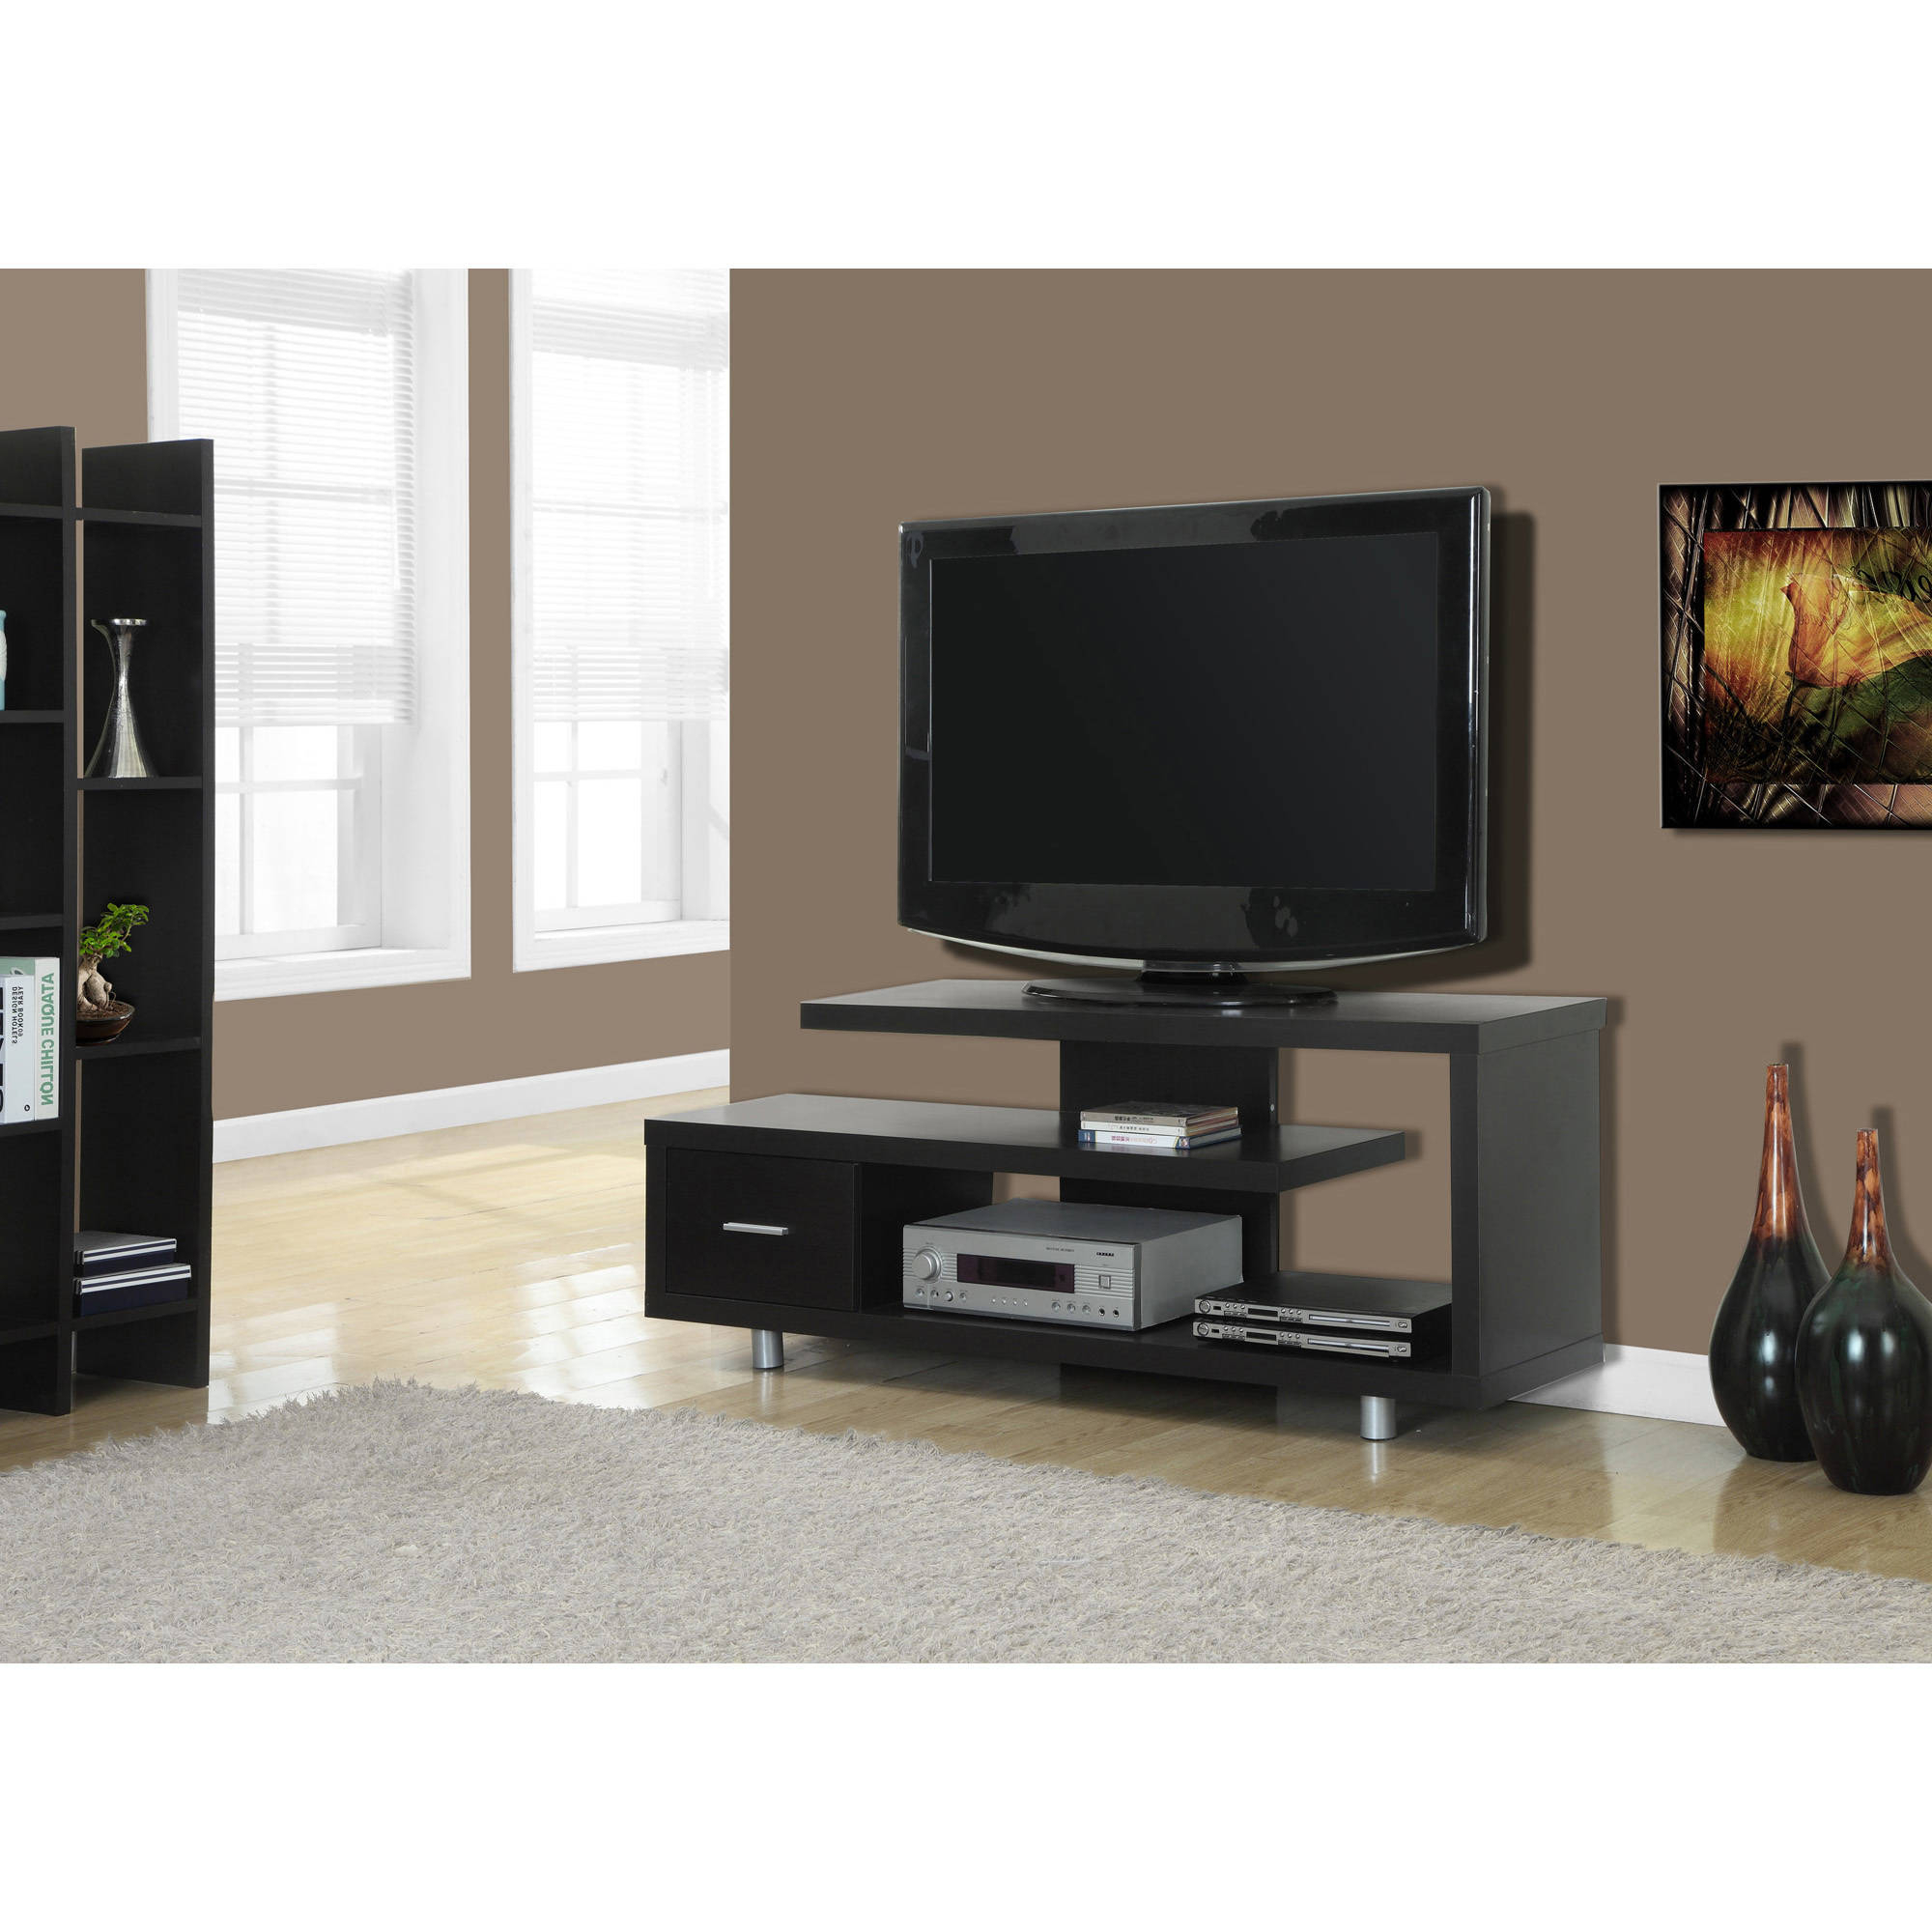 "Maddy 50 Inch Tv Stands In Famous Monarch Tv Stand White With 1 Drawer For Tvs Up To 47""l – Walmart (Gallery 18 of 20)"